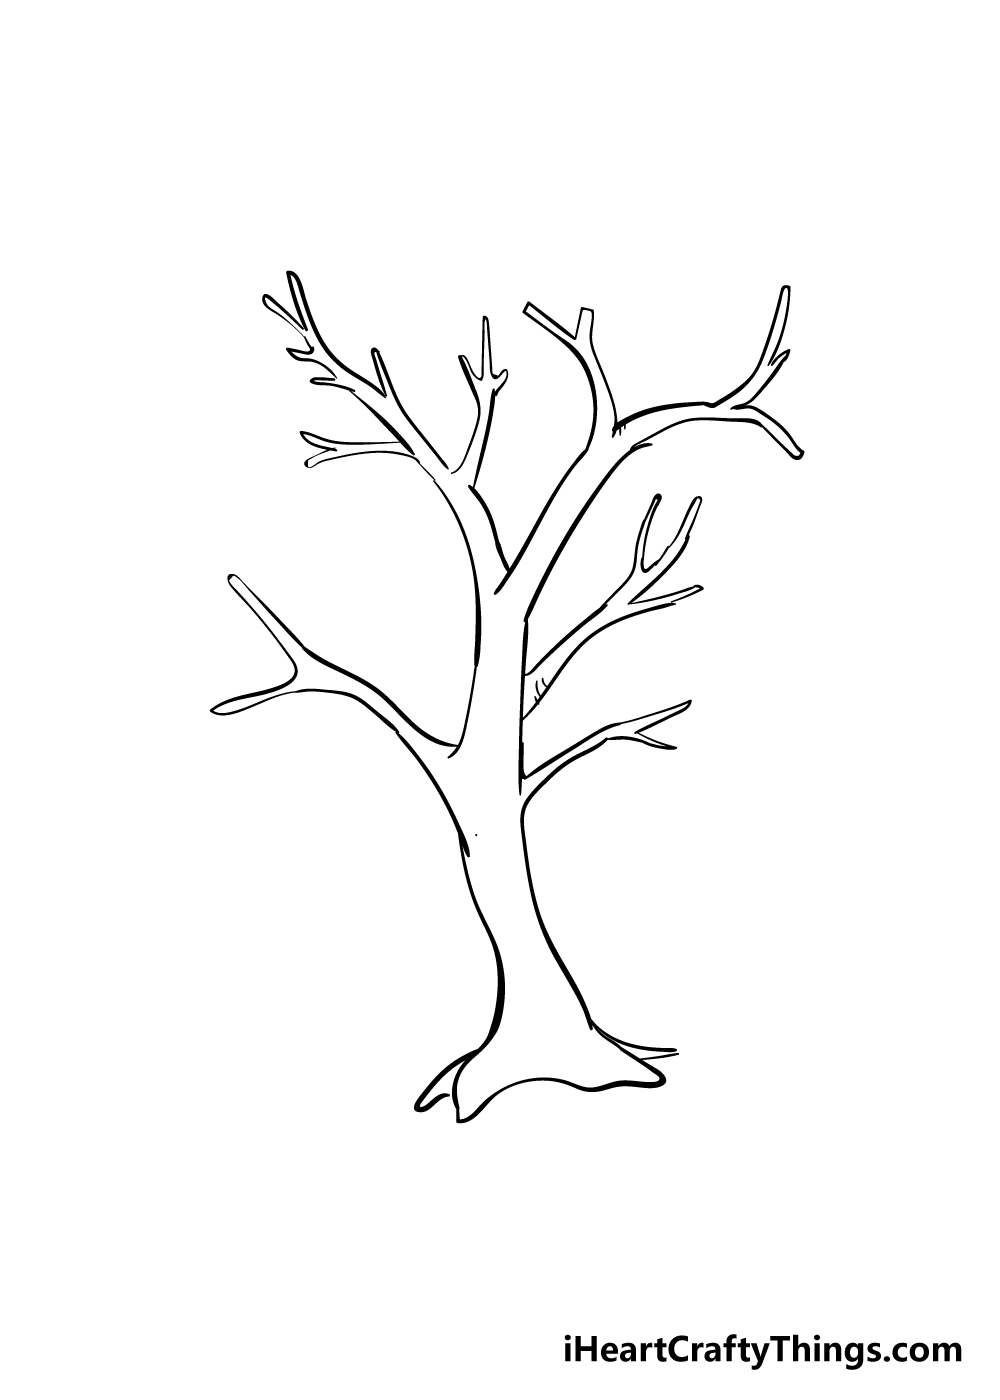 drawing branches step 4